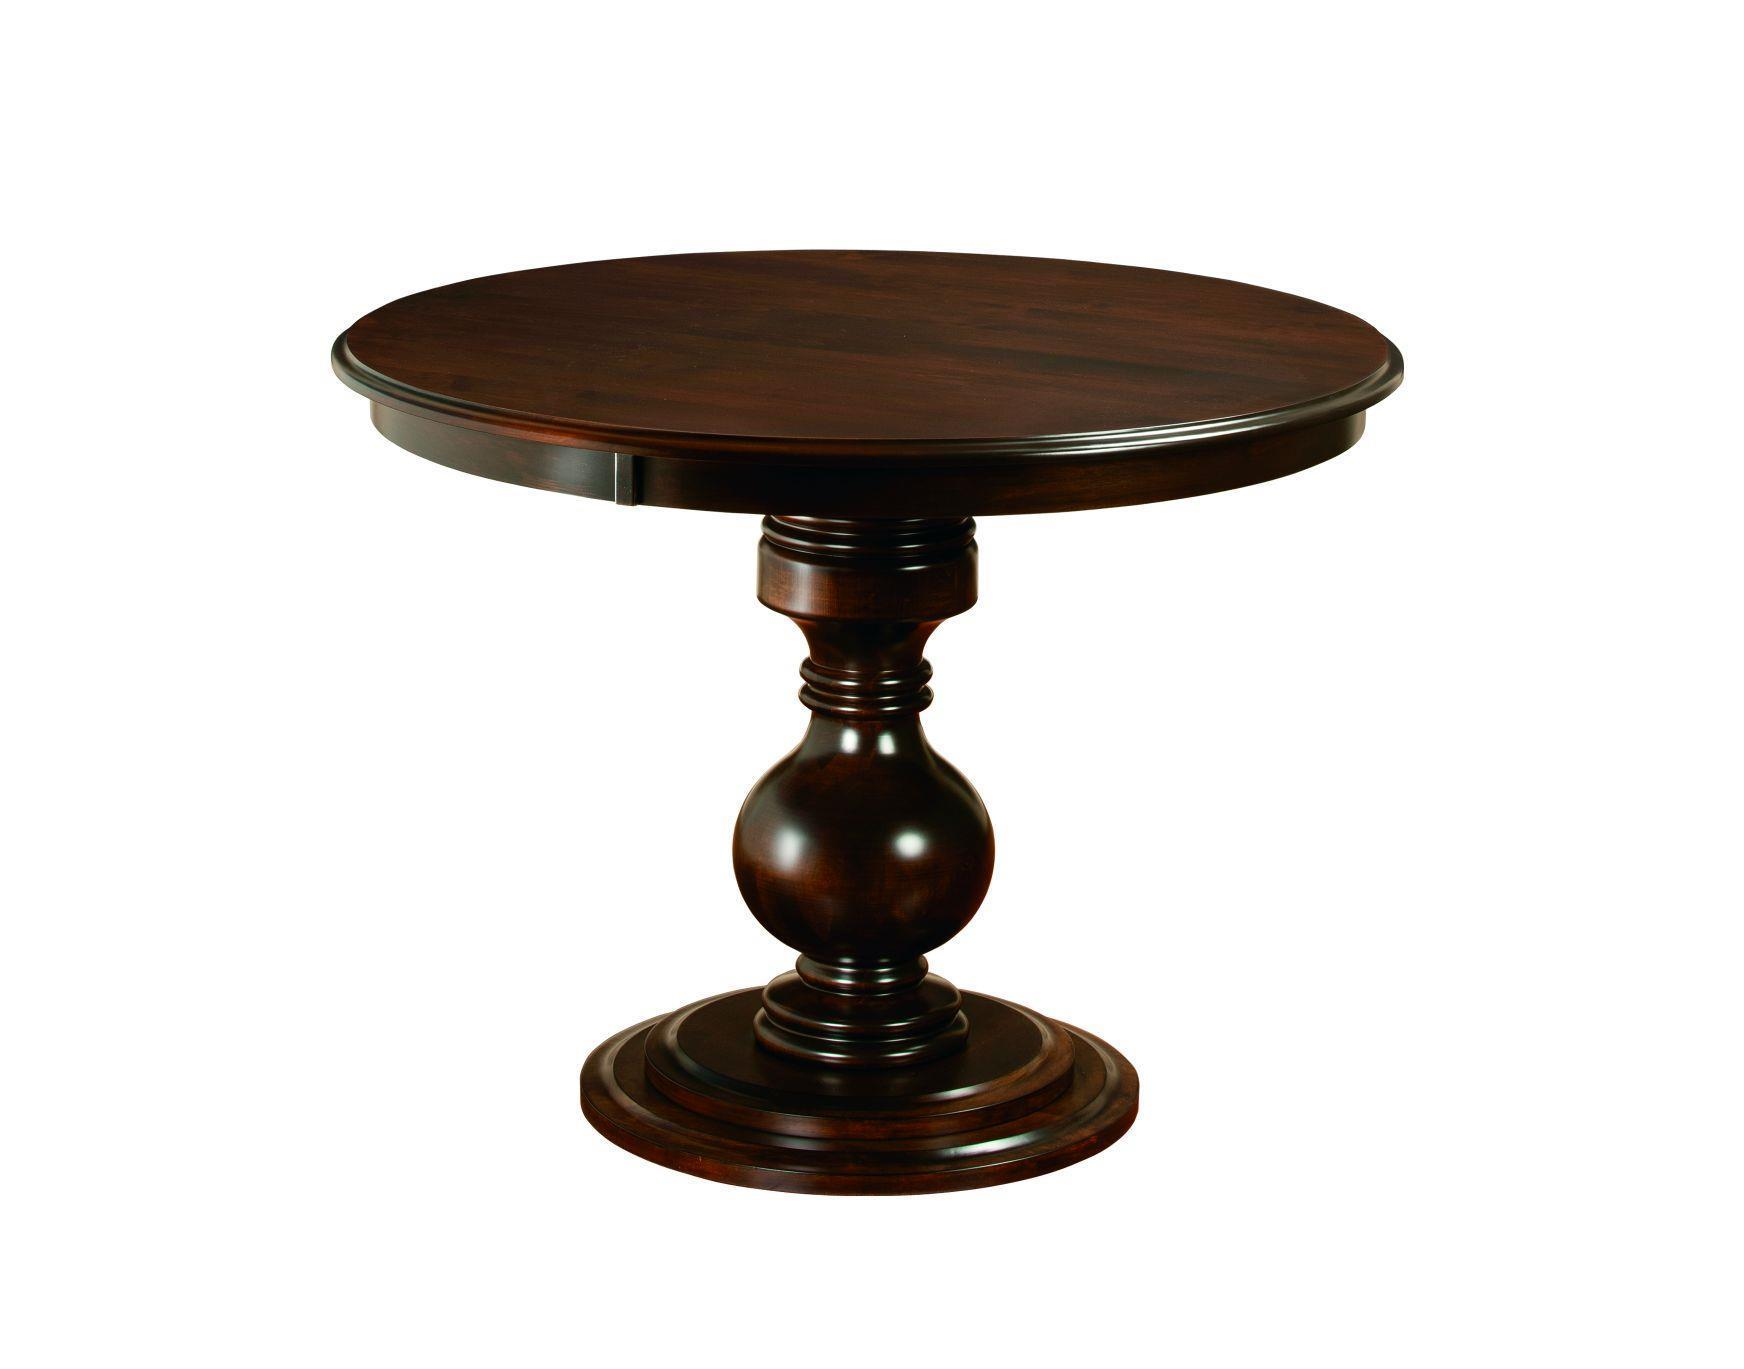 extension table pedestal lan photo double antique butterfly solid vols natural parquetry am tuscany light dining timber